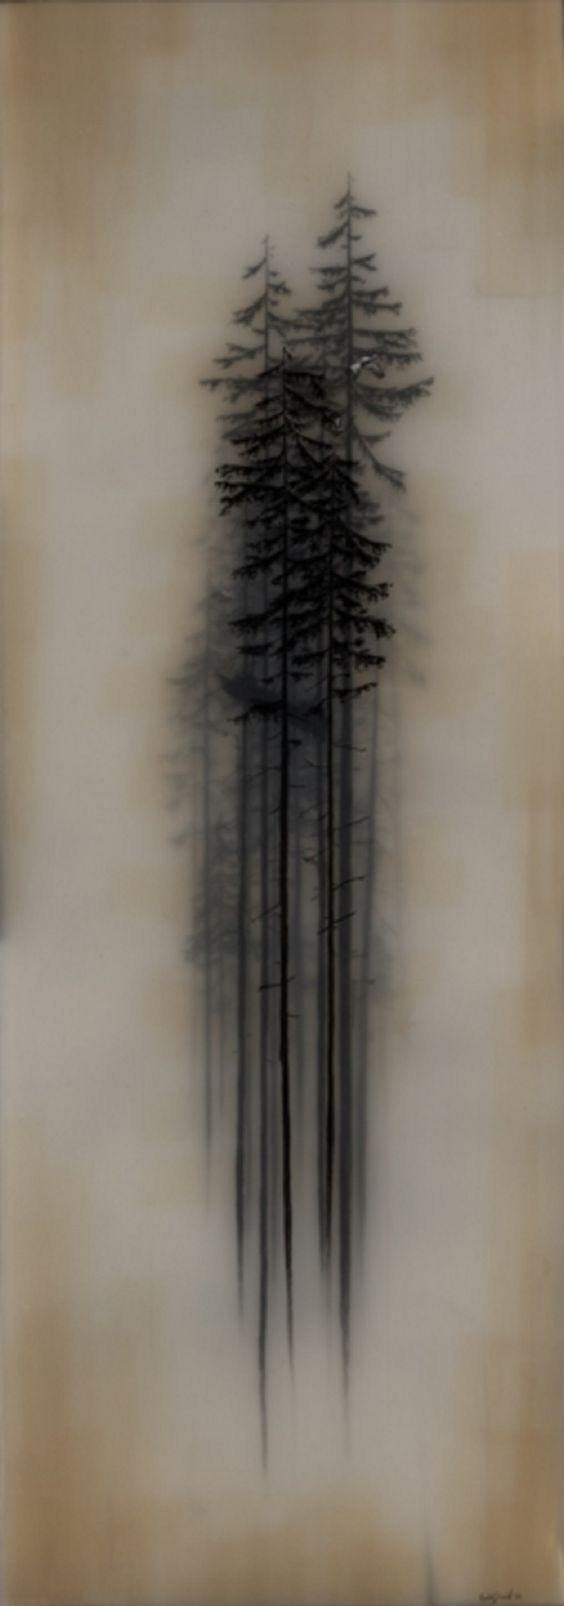 Brooks Salzwedel (Californian artist) - Unique Drawings